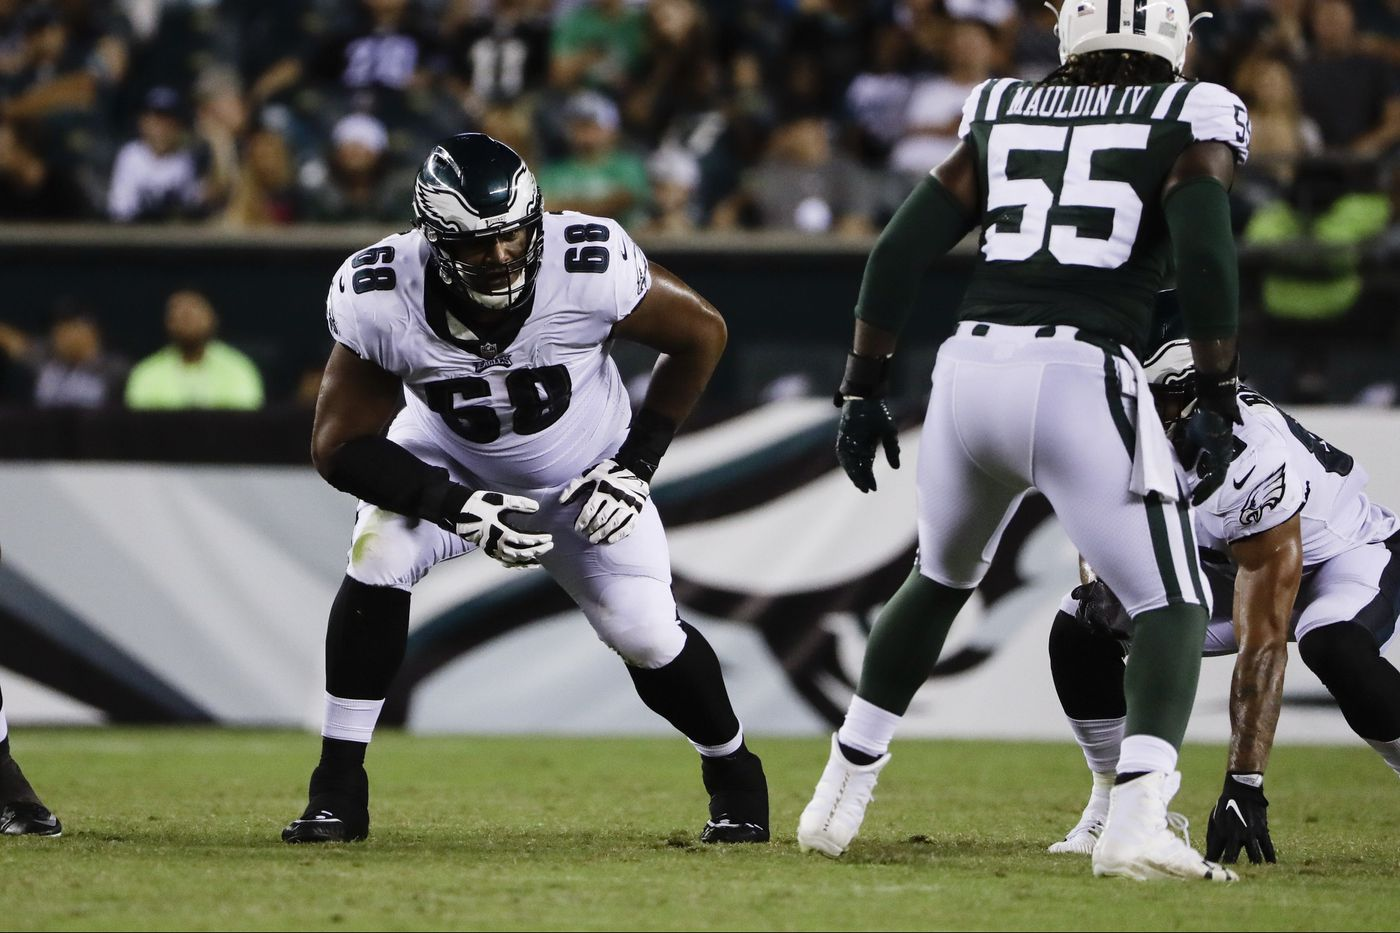 Eagles 53-man roster summary: Jordan Mailata makes it, Howie Roseman adds Deiondre' Hall, but cuts contain few surprises